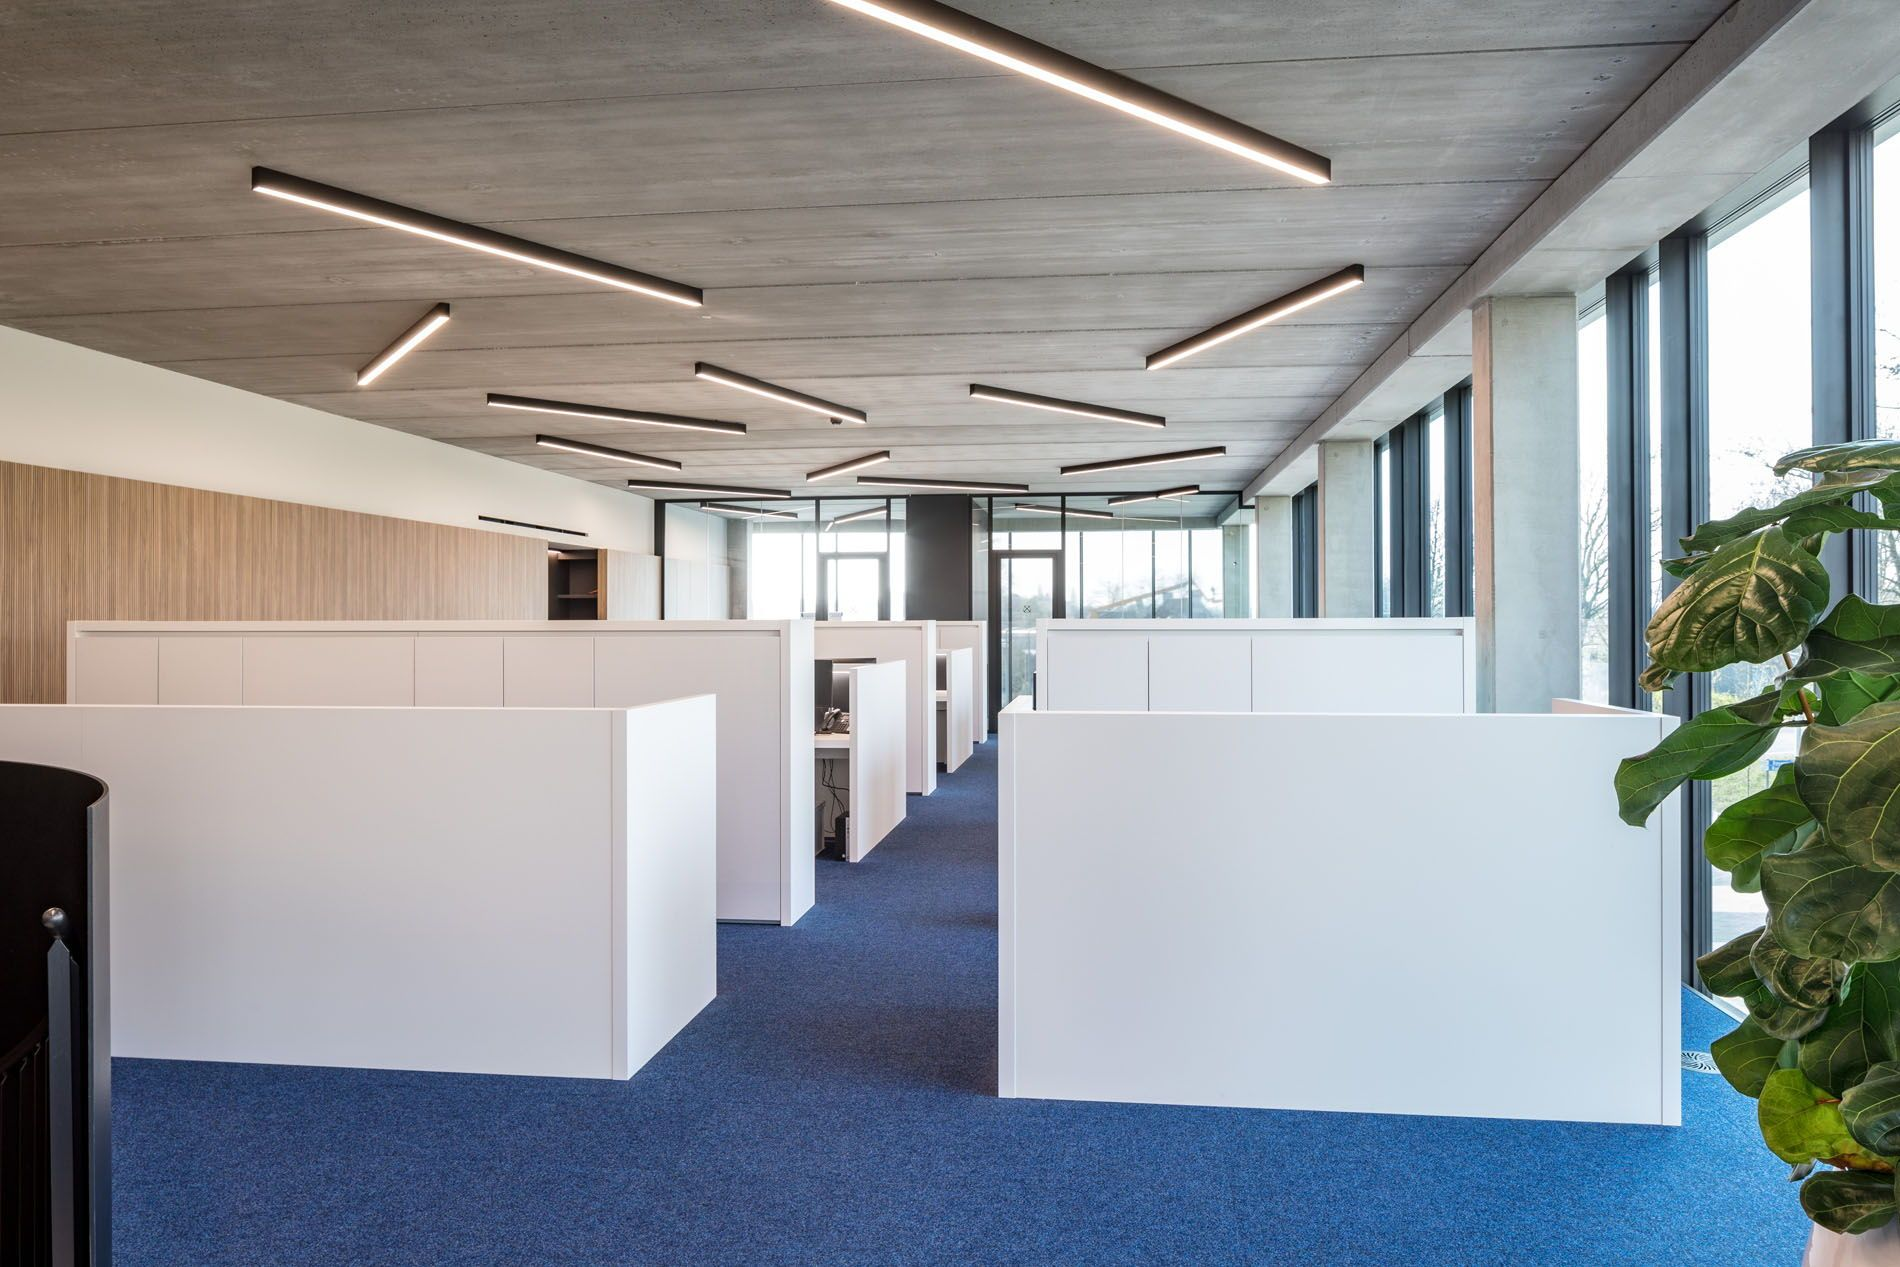 Zoutman Roeselare Interested In Office Or Ceiling Lighting Ideas These Days Interior Des Office Lighting Design Coworking Space Design Residential Design